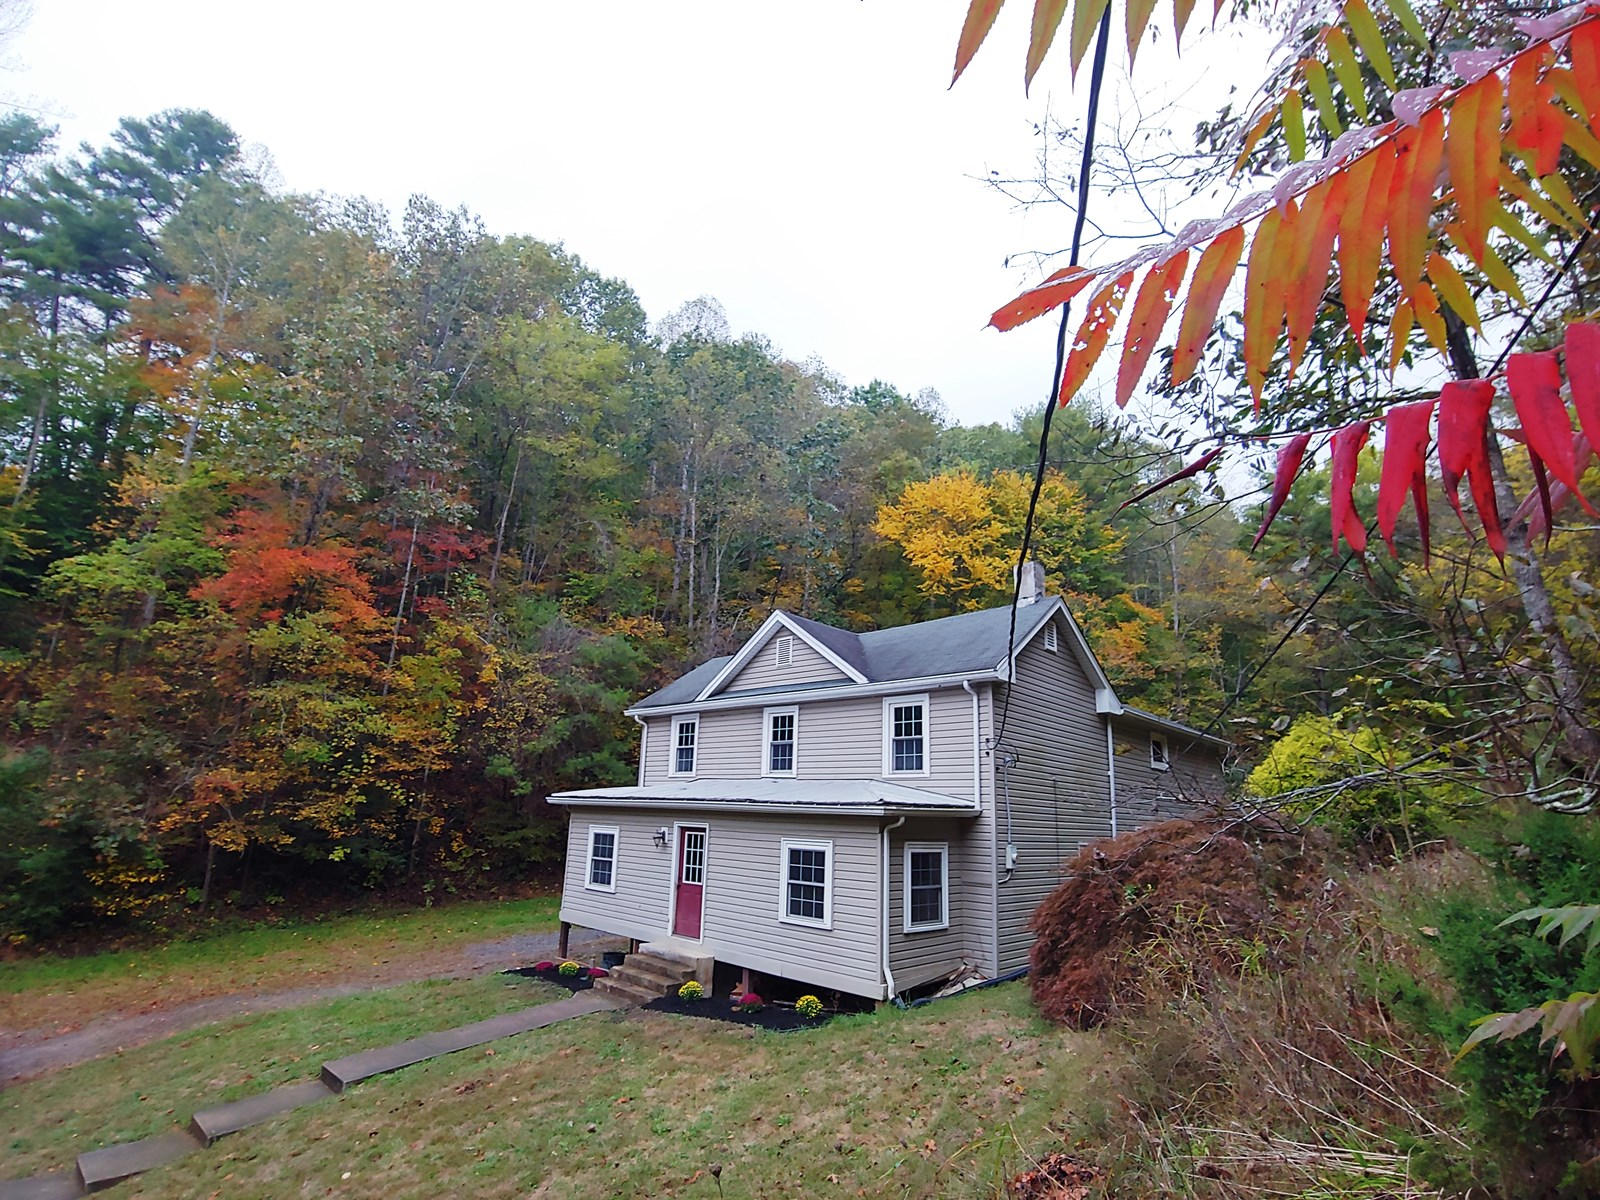 Farmhouse with Acreage for Sale in Shawsville, VA